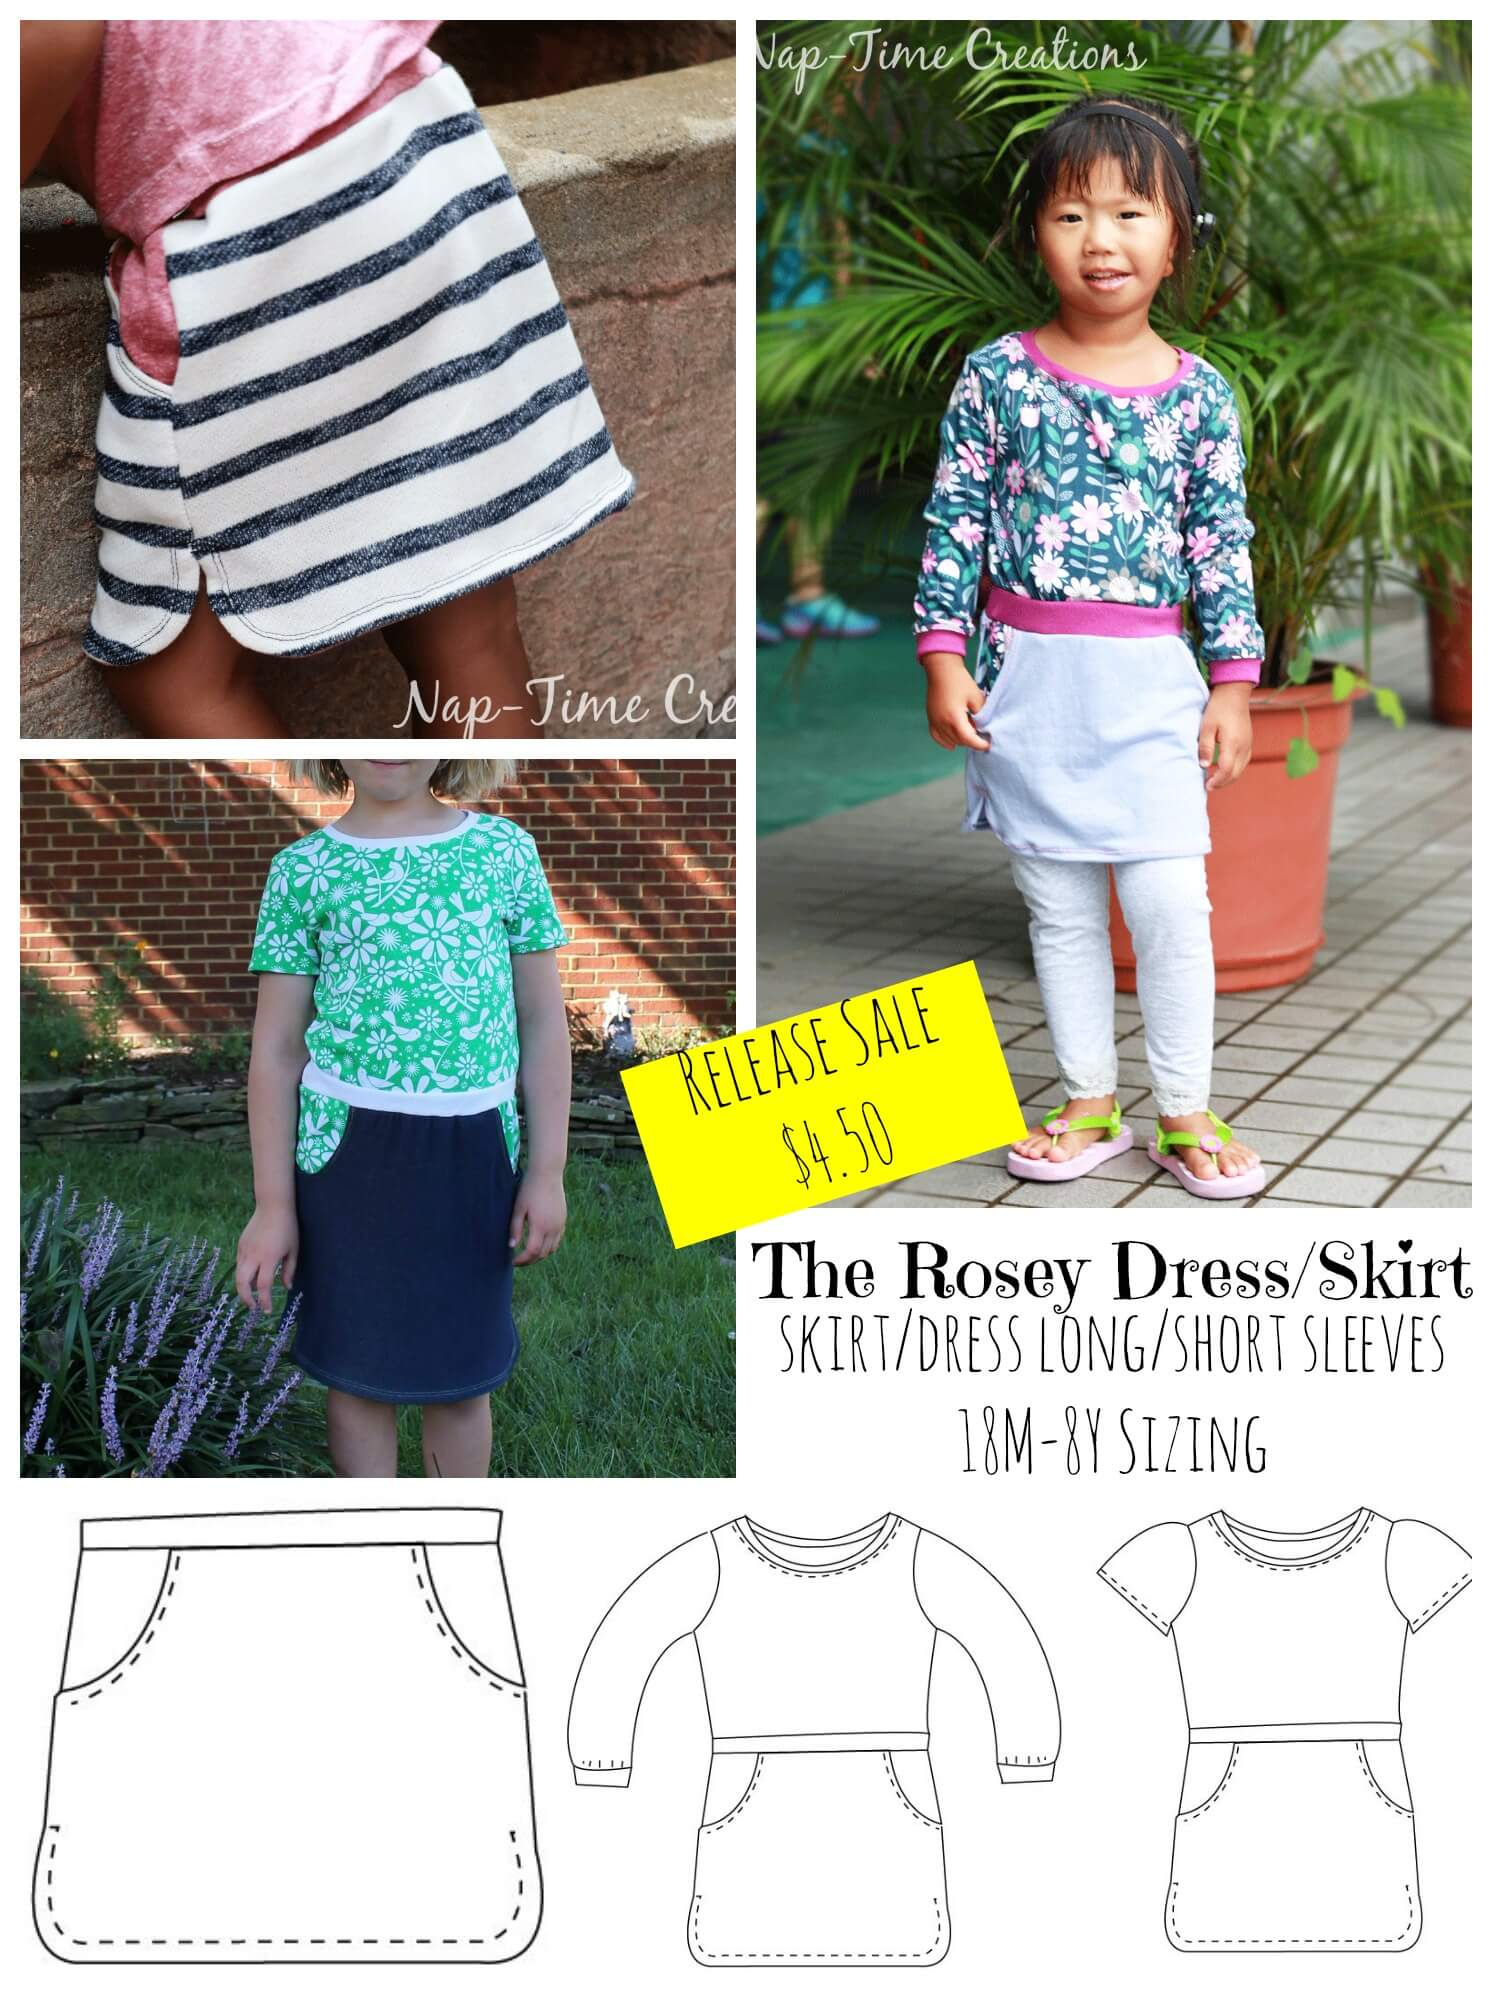 The Rosey Dress Pattern Release by Nap-Time Creations